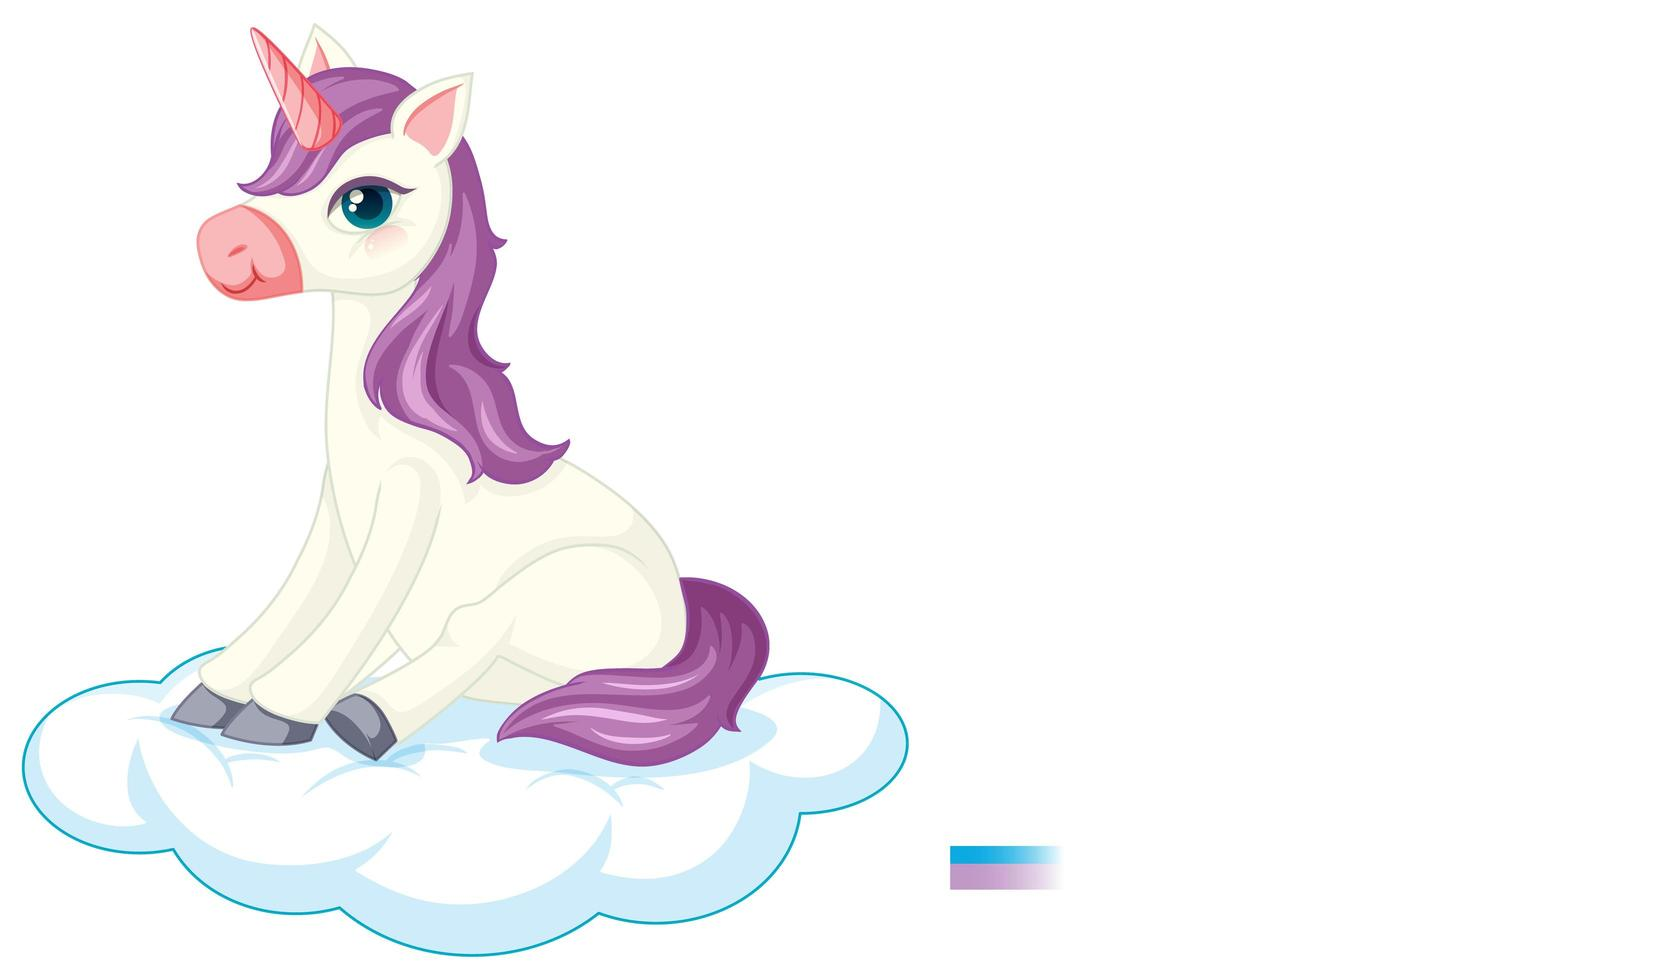 Cute purple unicorn in sitting position on white background vector